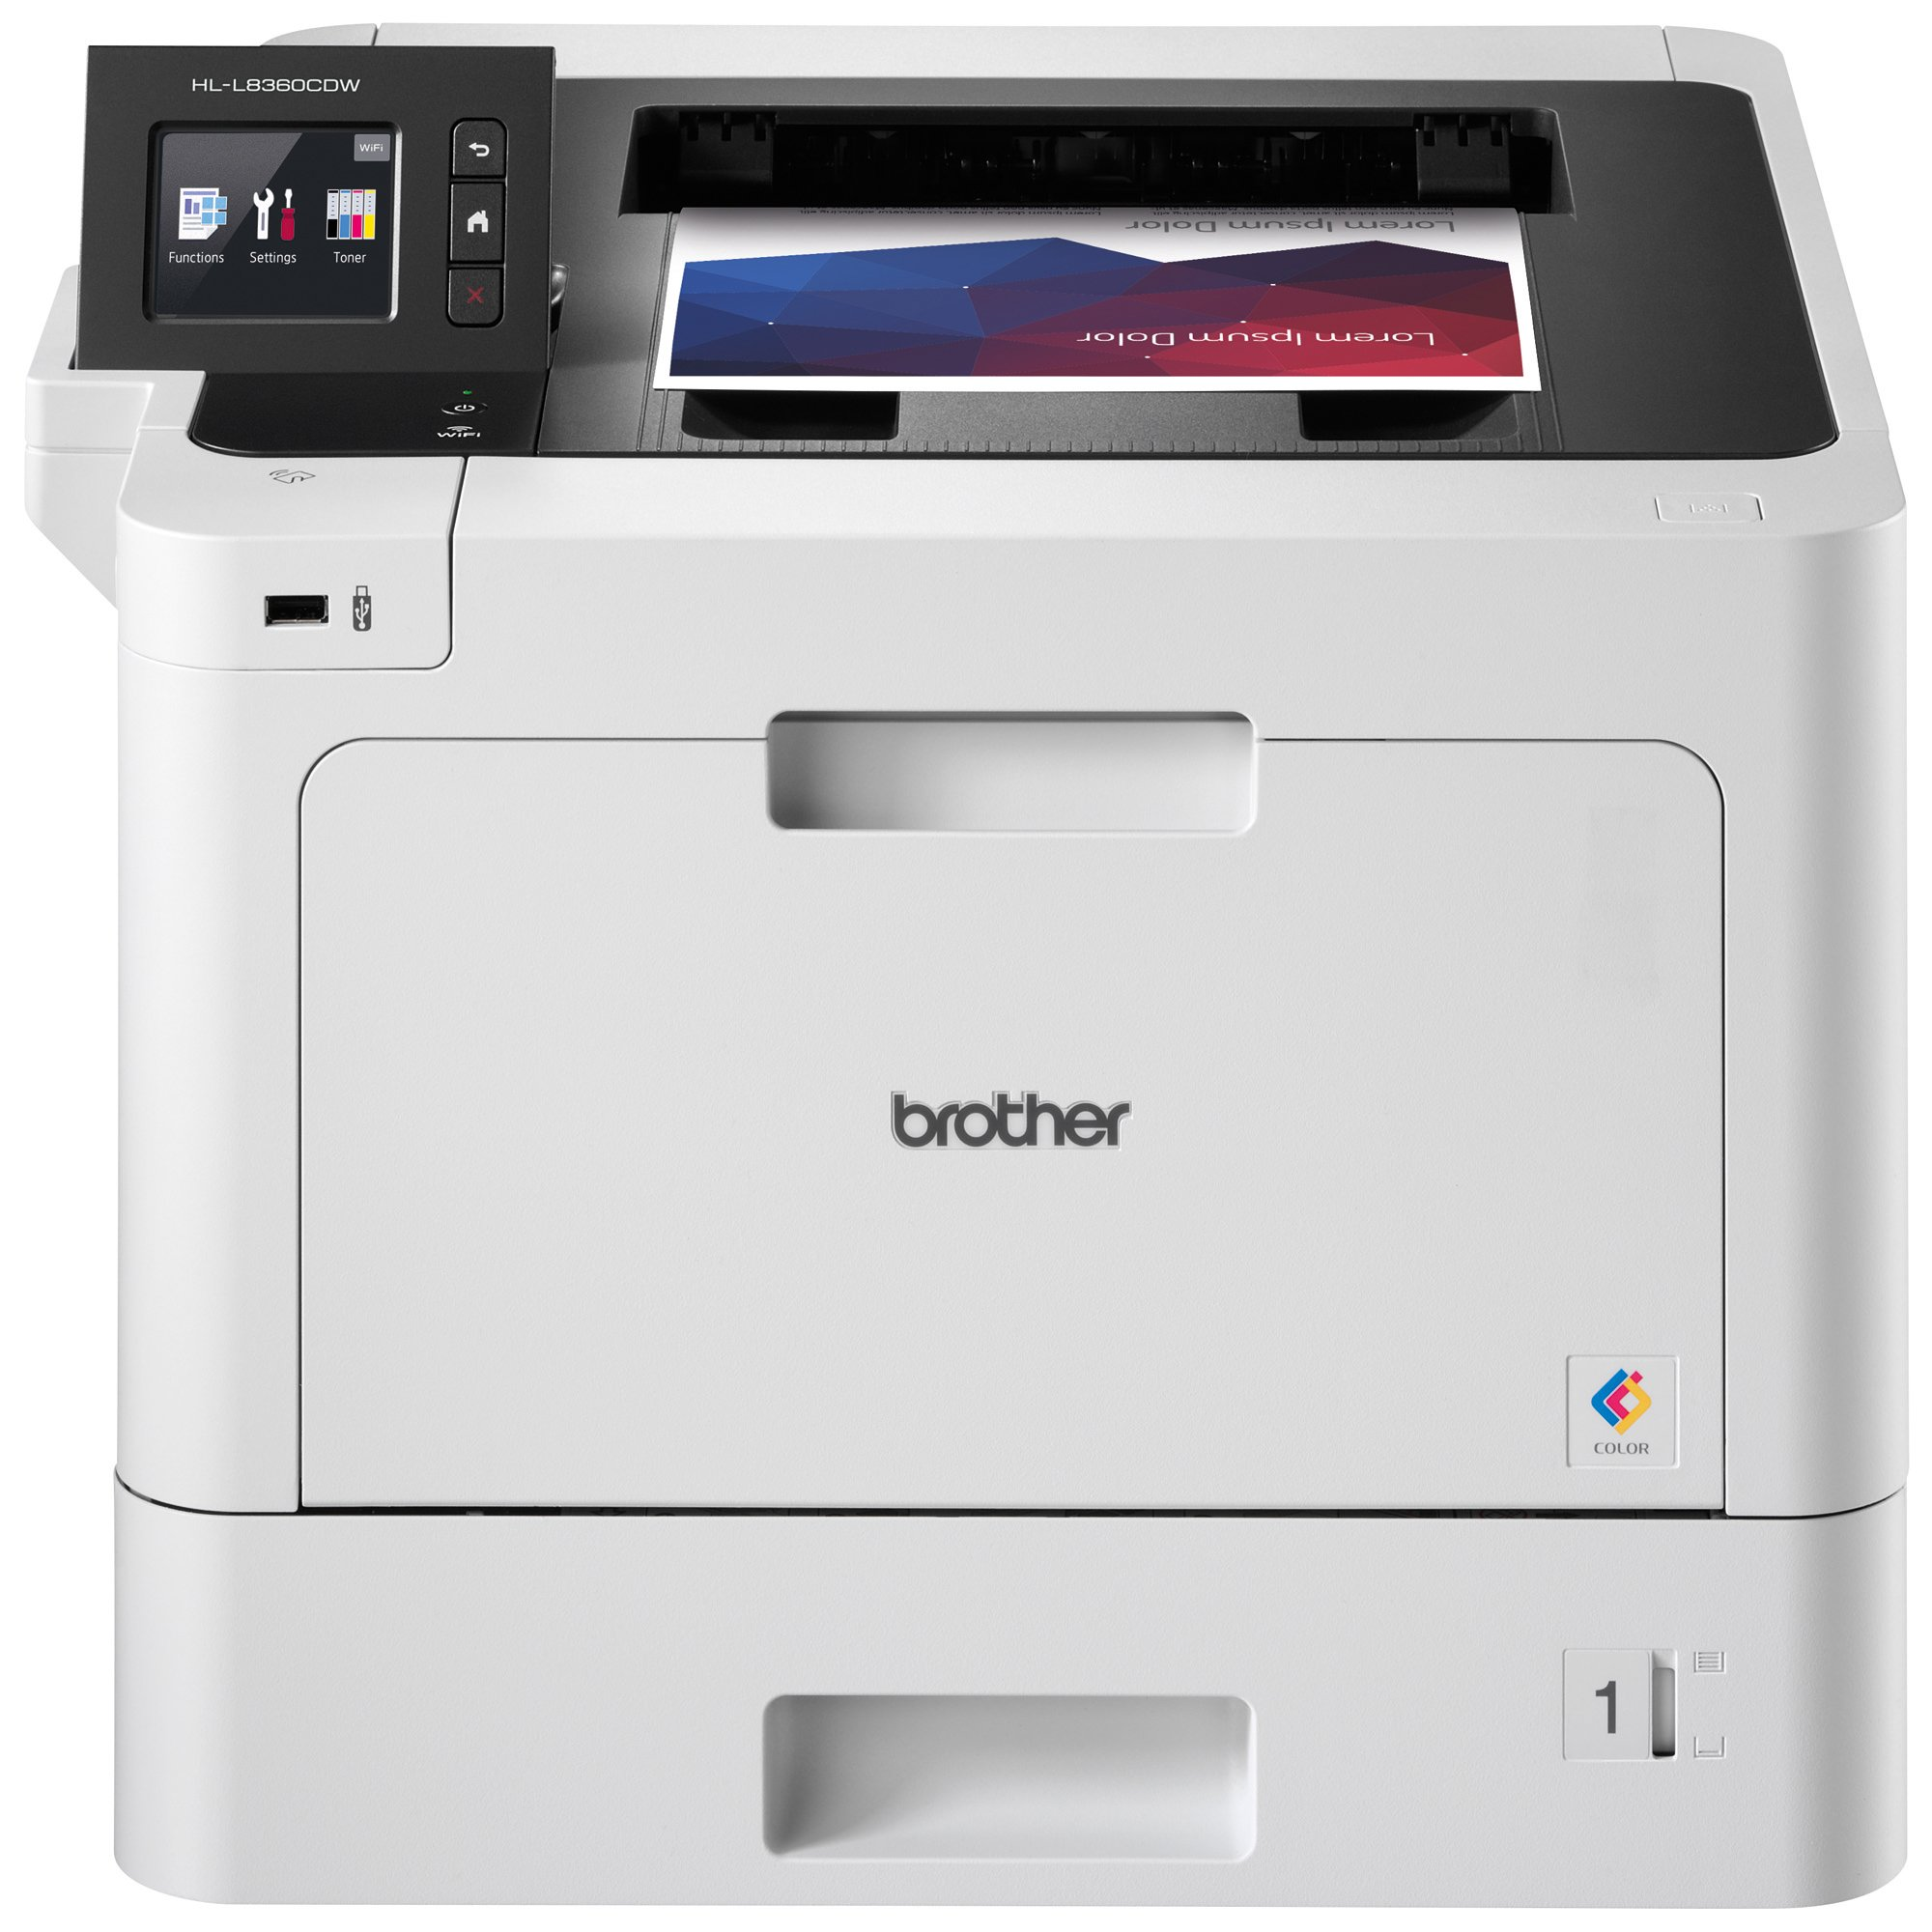 Brother Printer HLL8360CDW Business Color Laser Printer with Duplex Printing and Wireless Networking,  Amazon Dash Replenishment Enabled